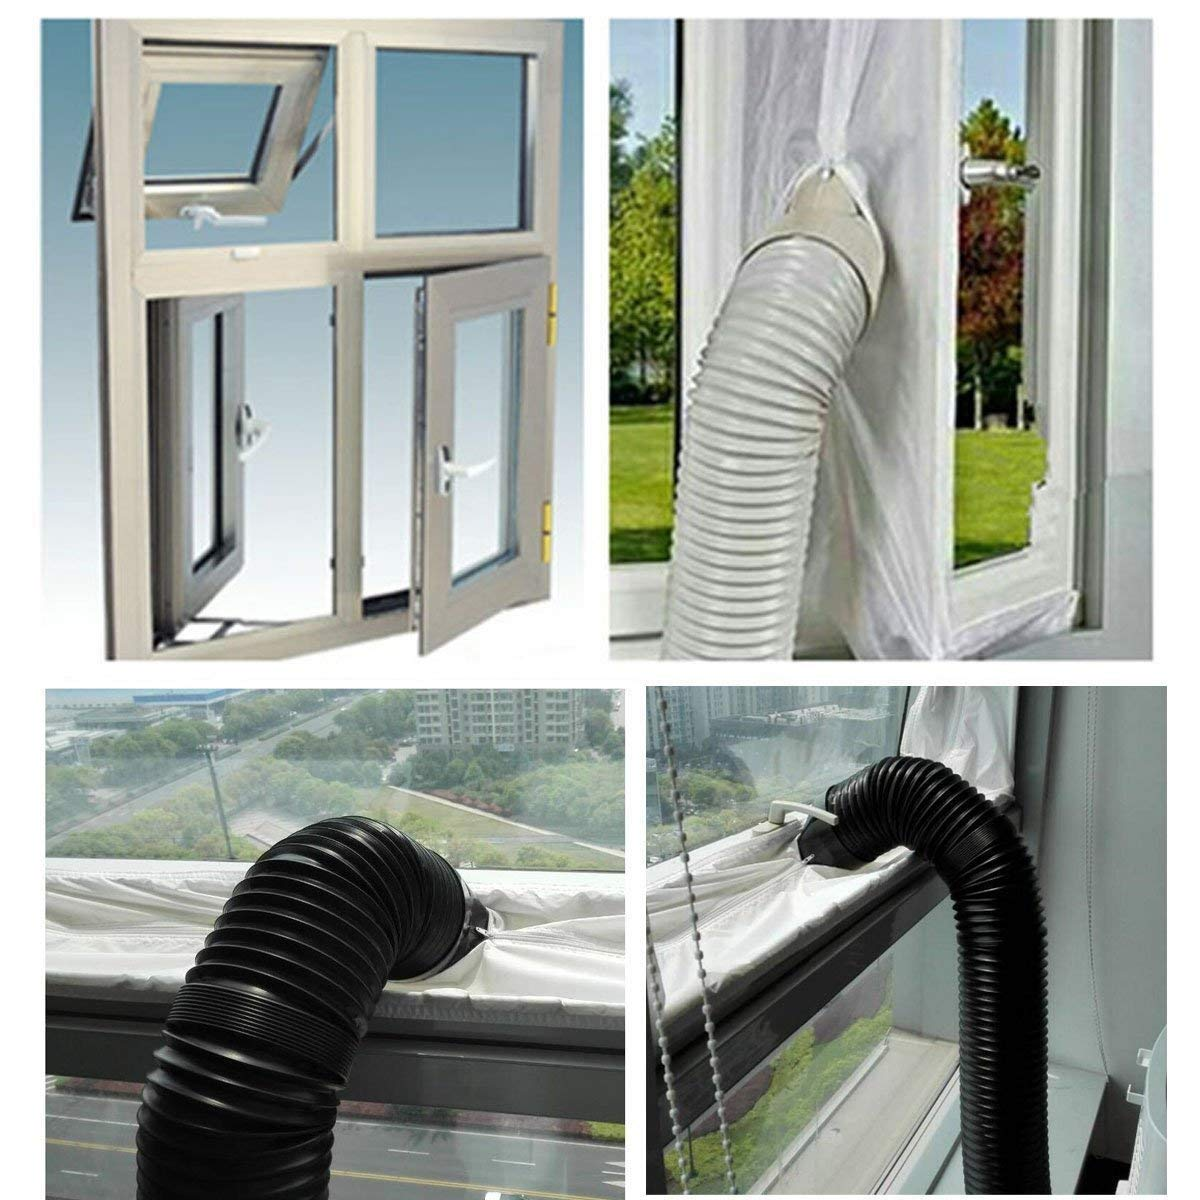 Buy Hoomee 300 Cm Universal Window Seal For Portable Air